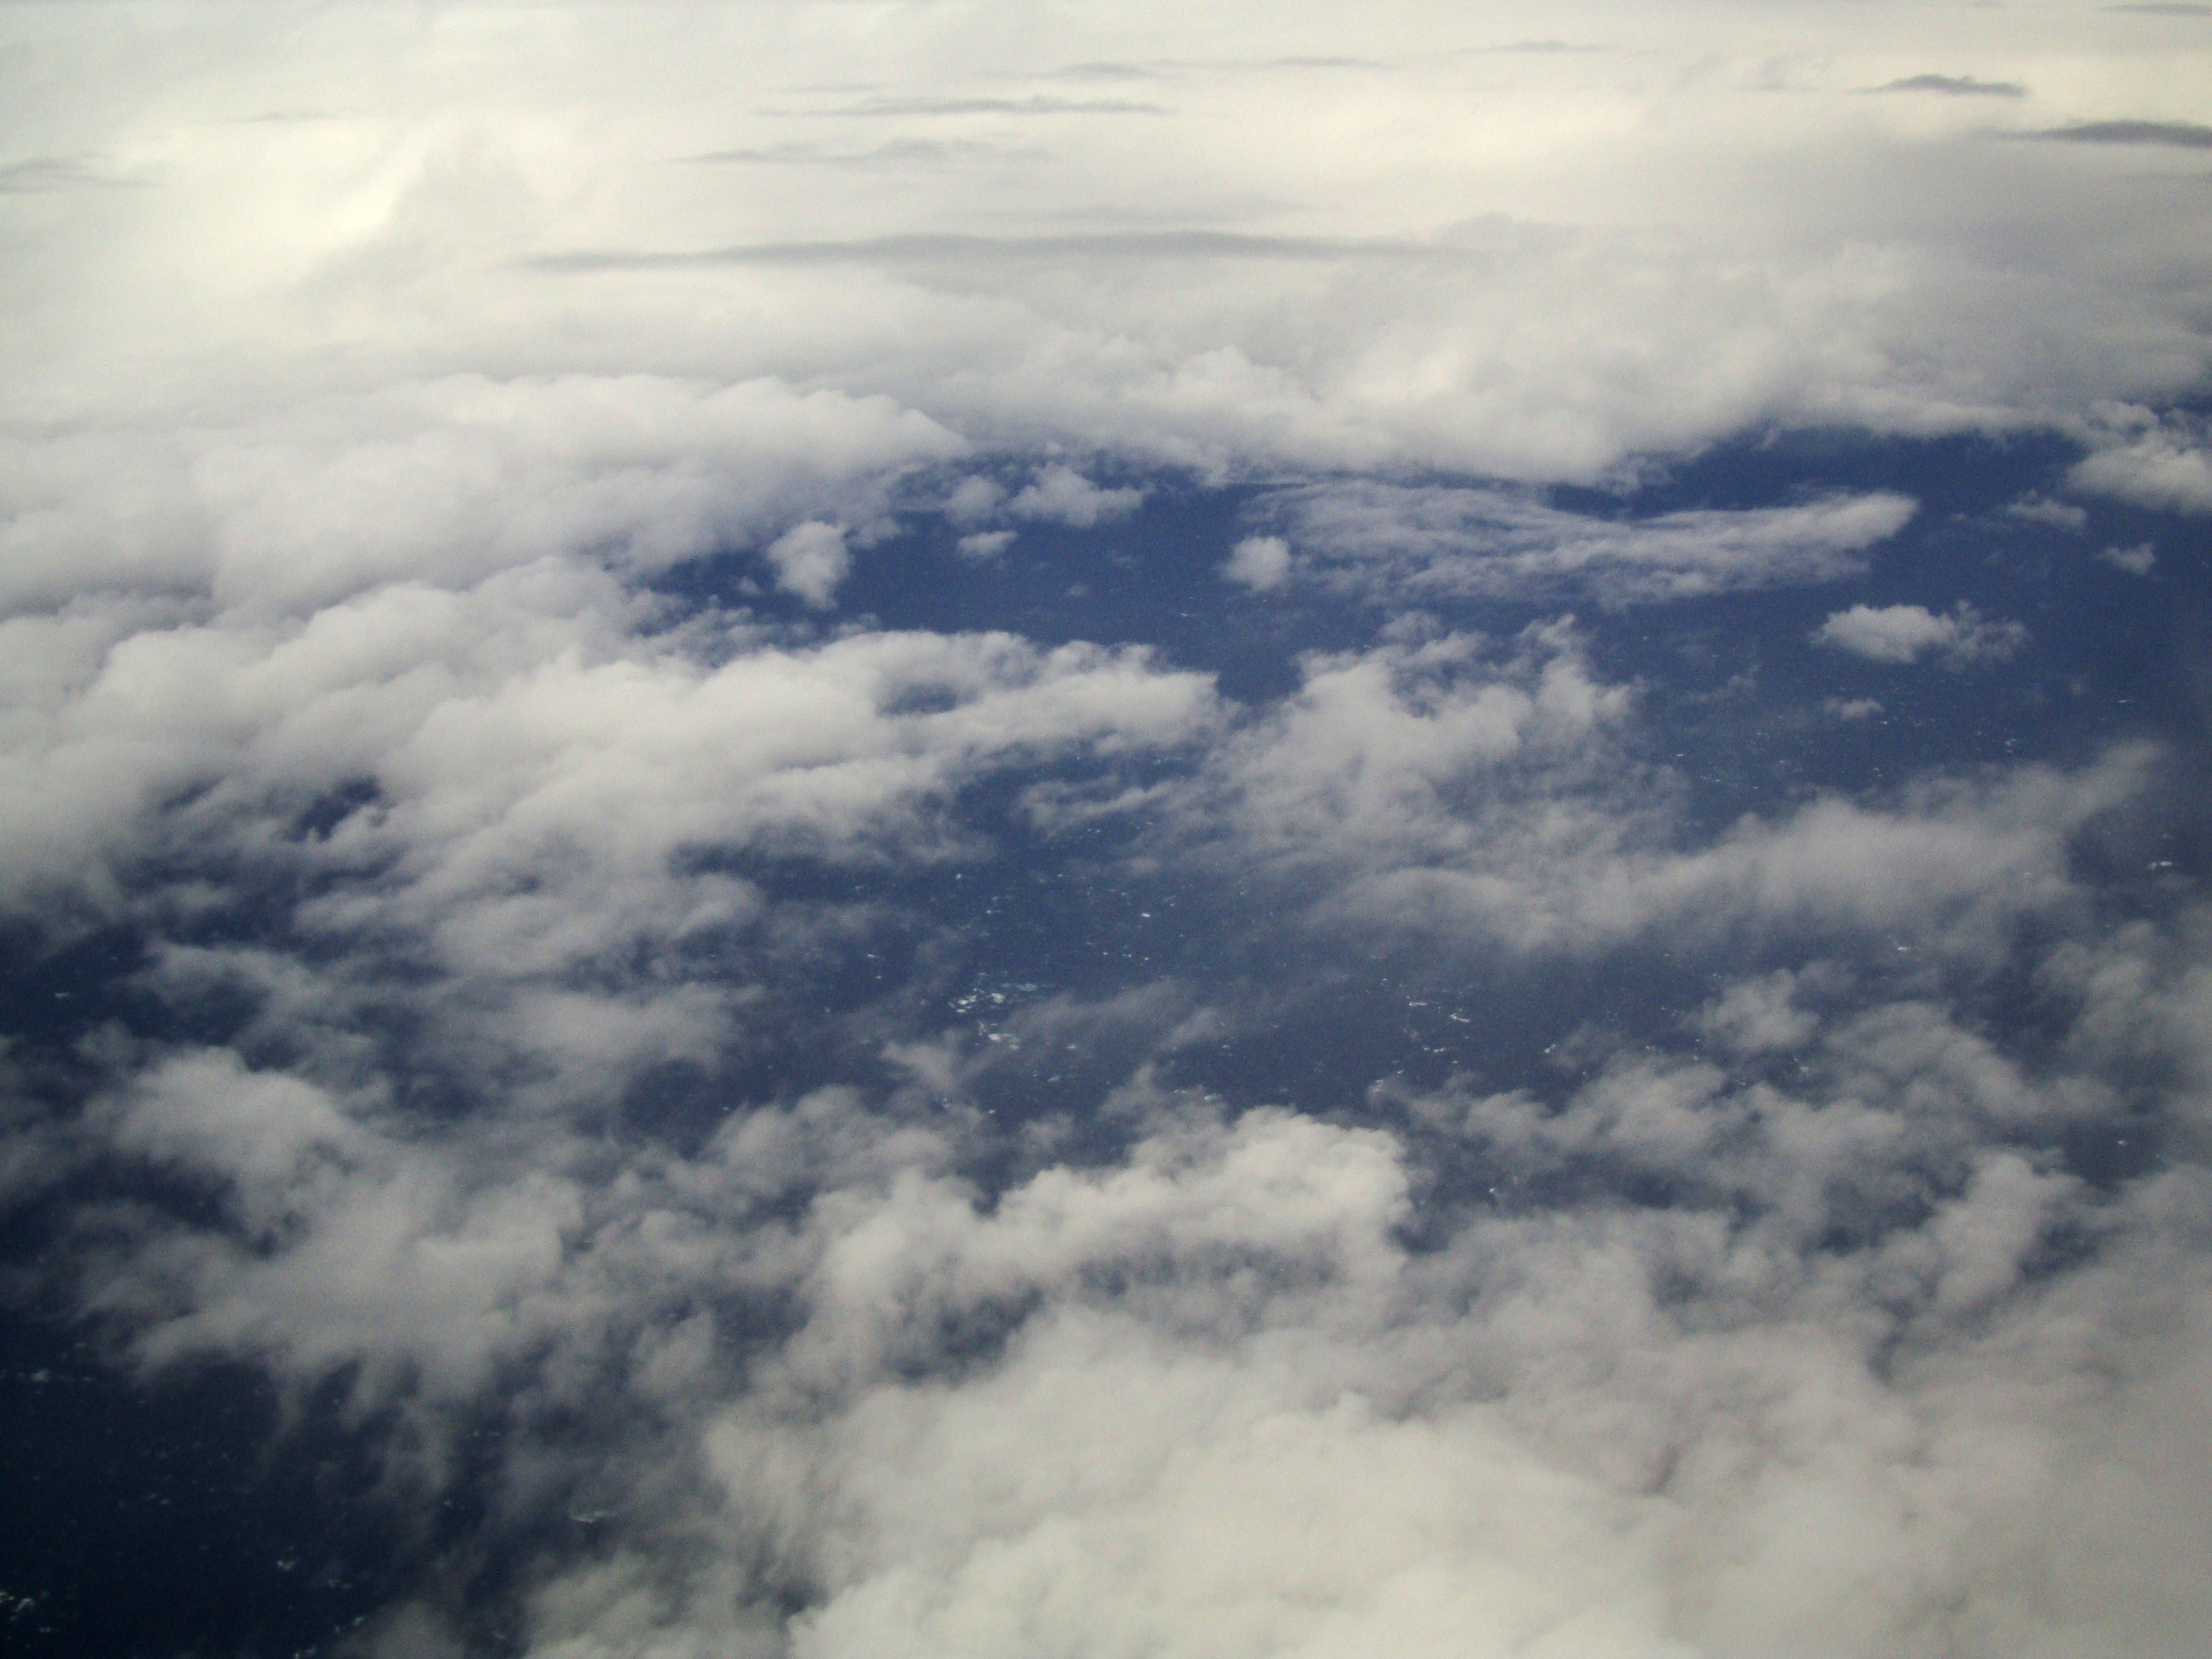 Textures Clouds Formations Sky Storms Weather Phenomena Aerial Views 19